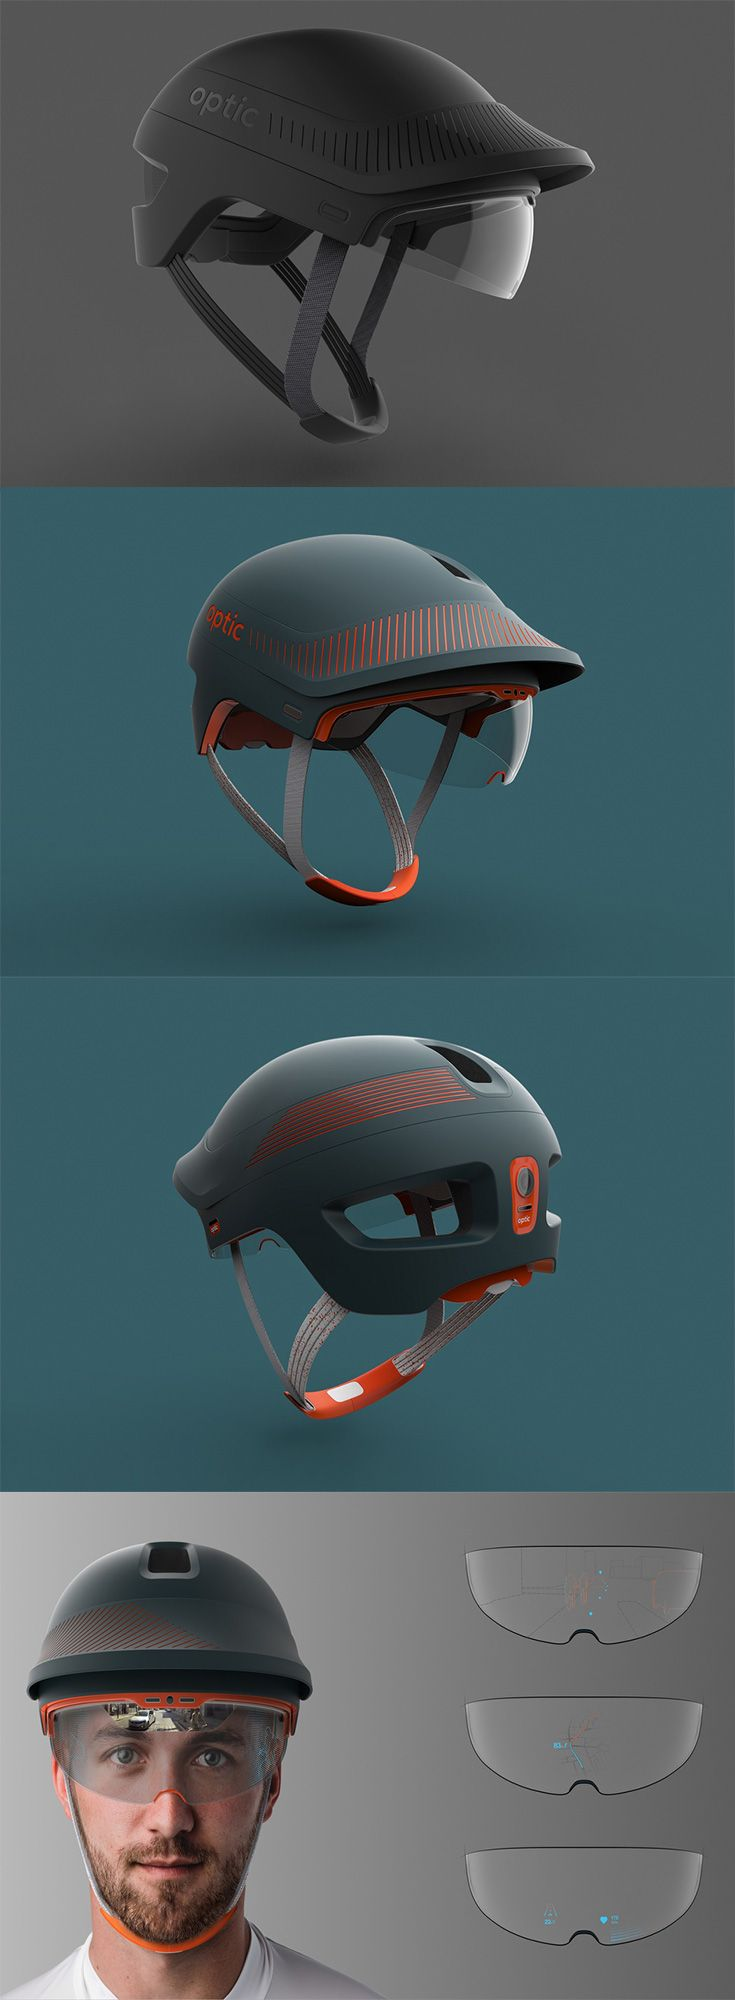 'Optic' is a helmet for bikers that gives them an augmented reality cycling experience, it comes with two cameras mounted on the front and back that not only monitor  traffic, but also guide them through obstacles, allowing them to optimize their ride time and effort... READ MORE at Yanko Design !